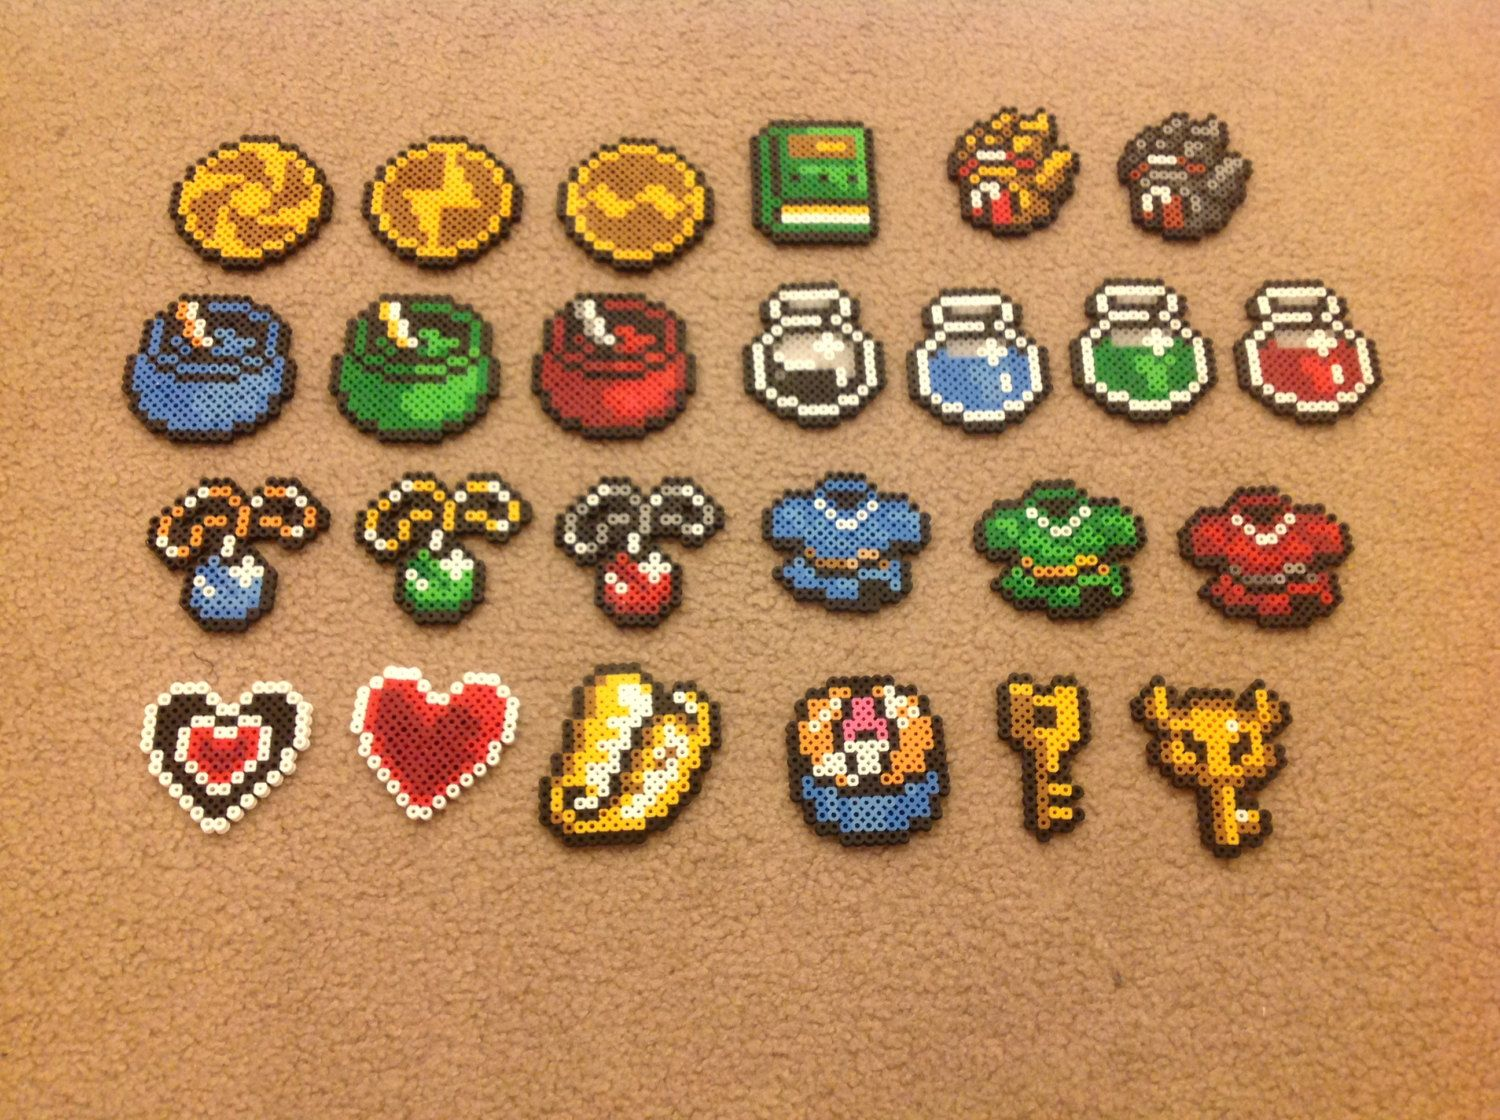 Alttp Replaying A Link To The Past Over The Holidays Couldn T Find Many Item Tier Lists Online That I Liked So I Decided To Make My Own What Do You Think Zelda